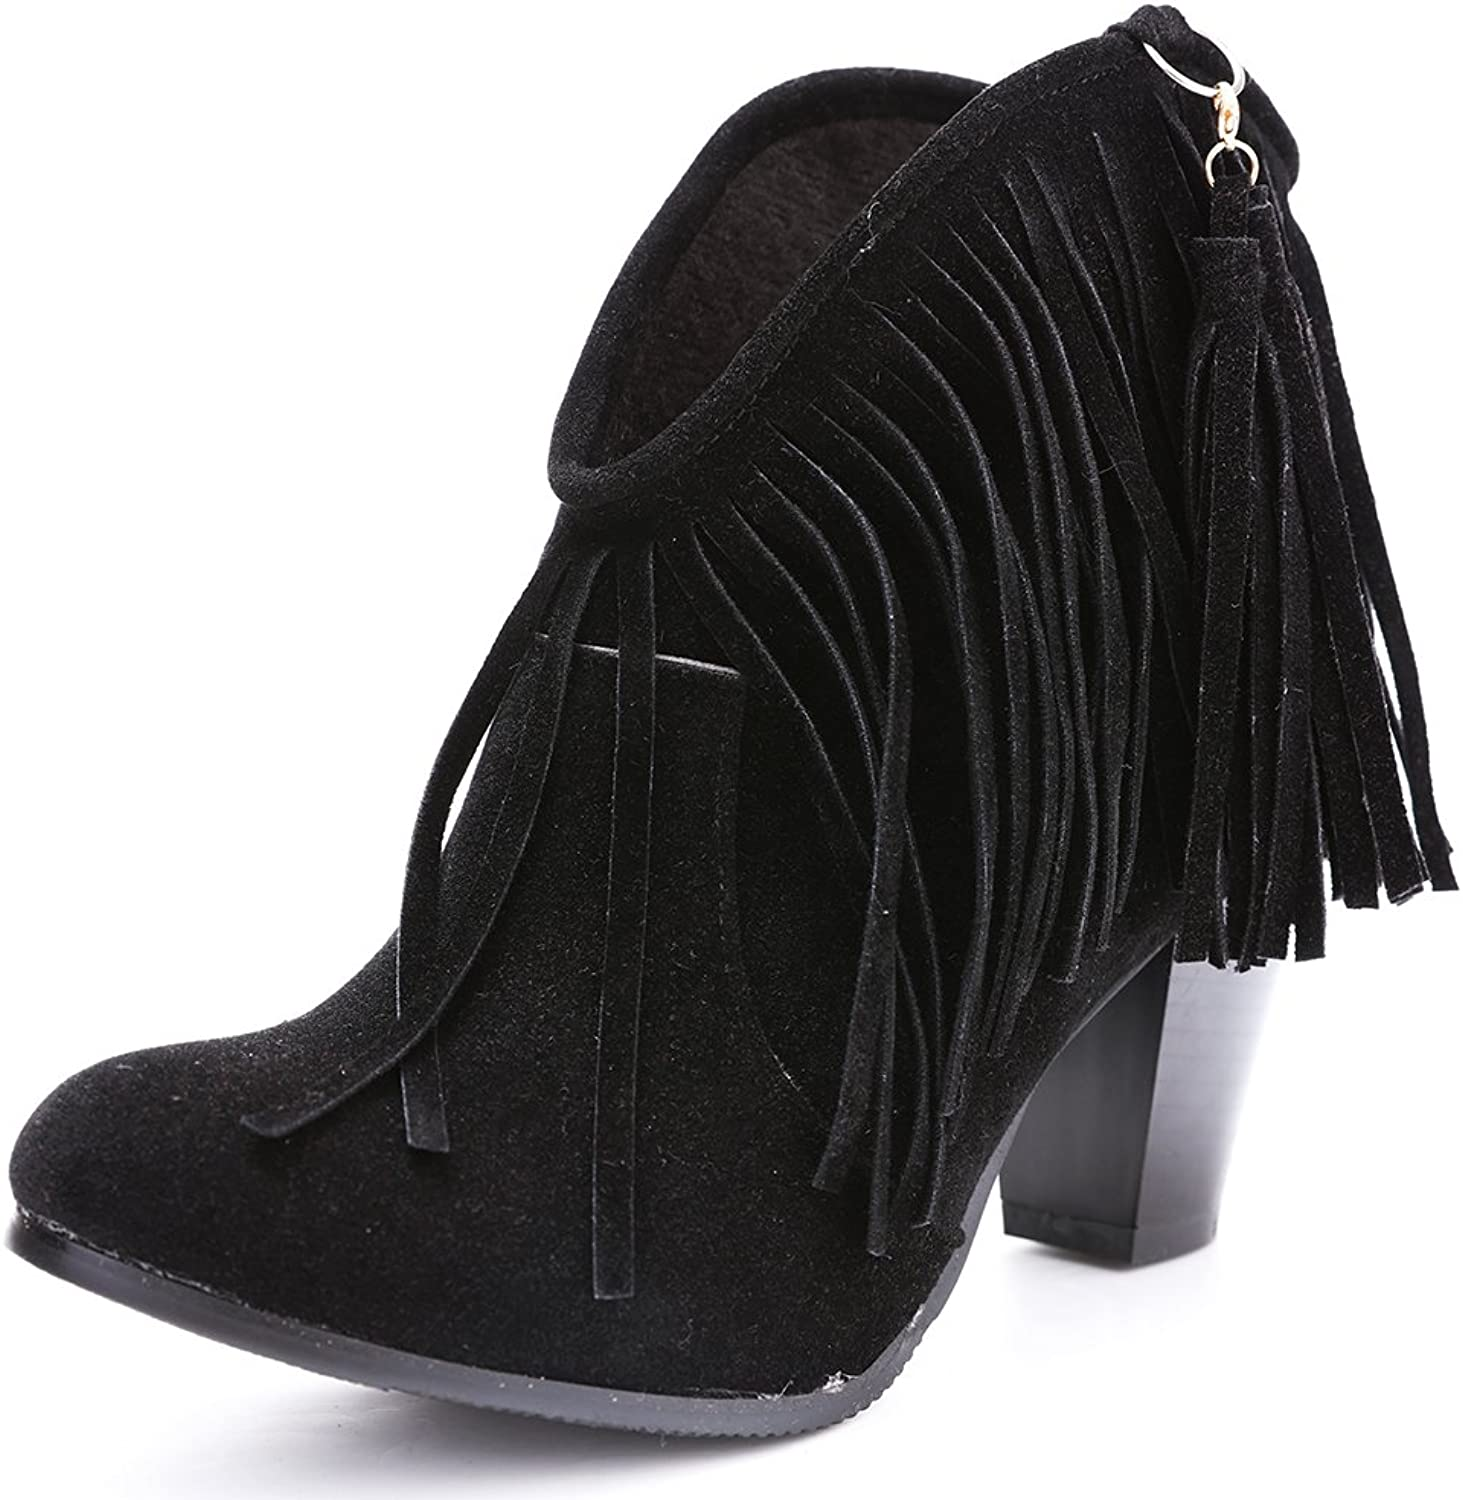 Novel Harp Womens Faux Suede Fringe Slip On Chunky High Heels Ankle Boots